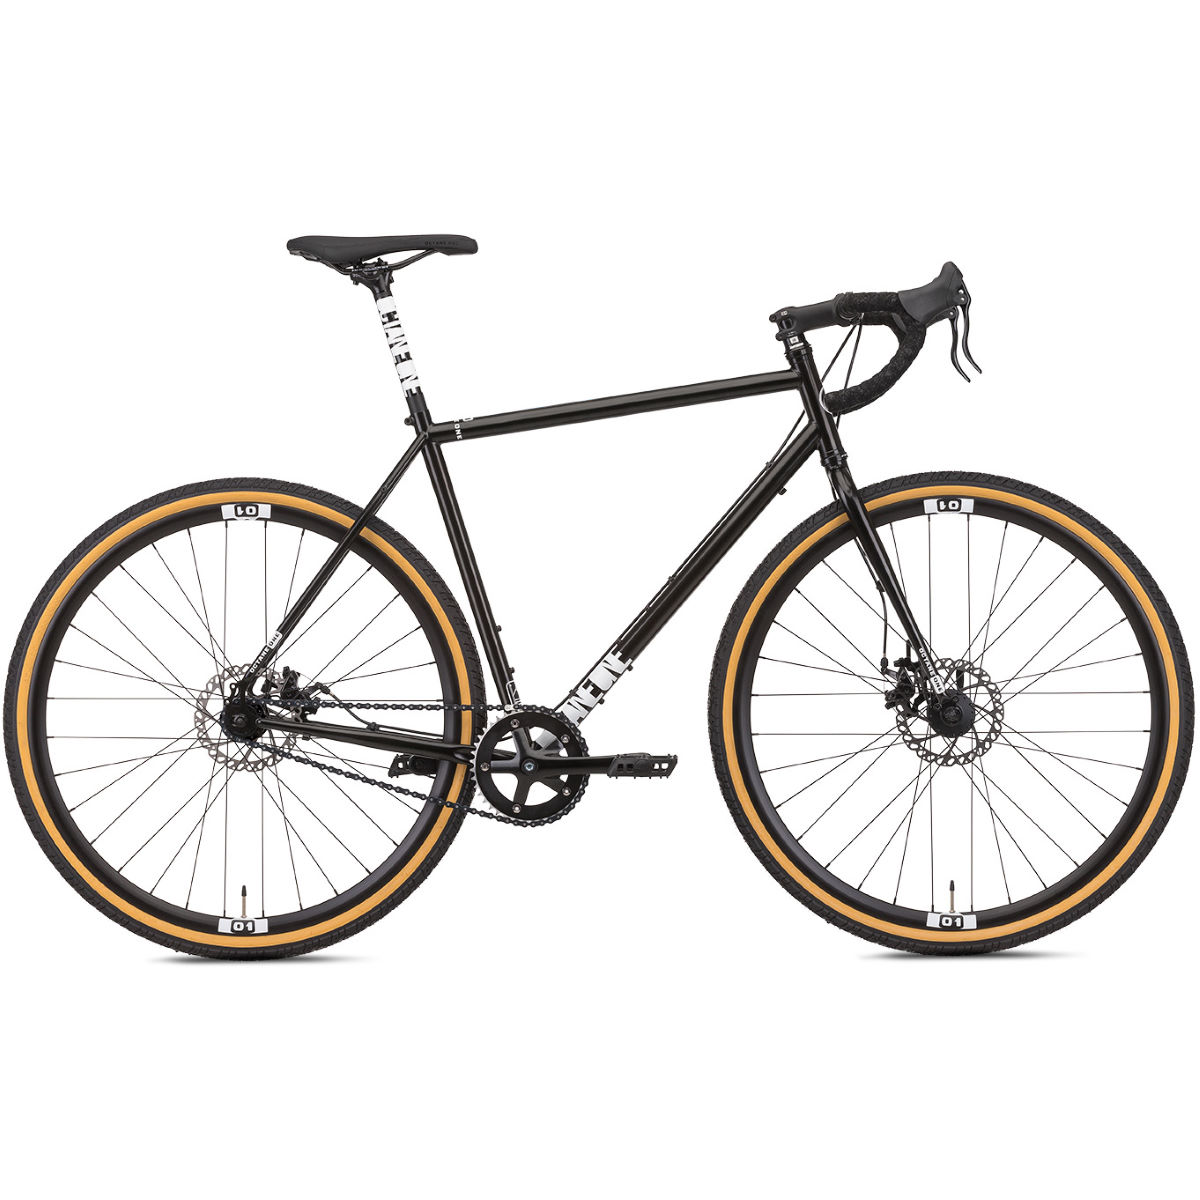 Octane One Kode Commuter Road Bike - Bicicletas de cicloturismo